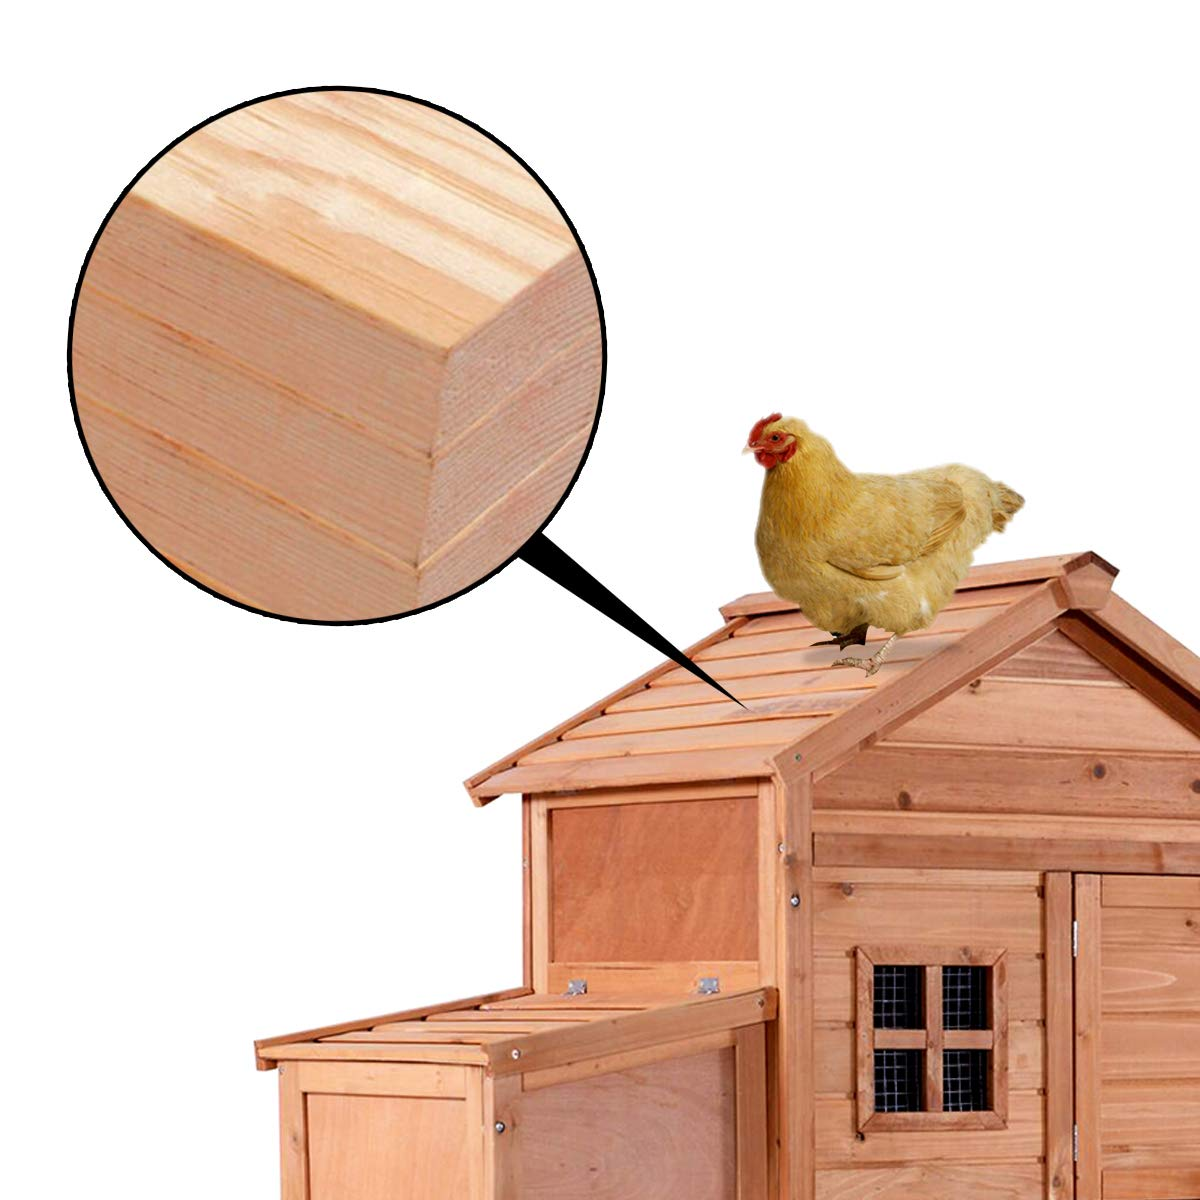 MCombo Chicken Poultry Coop Hen House Rabbit Hutch Cage-XLarge 6010-0315